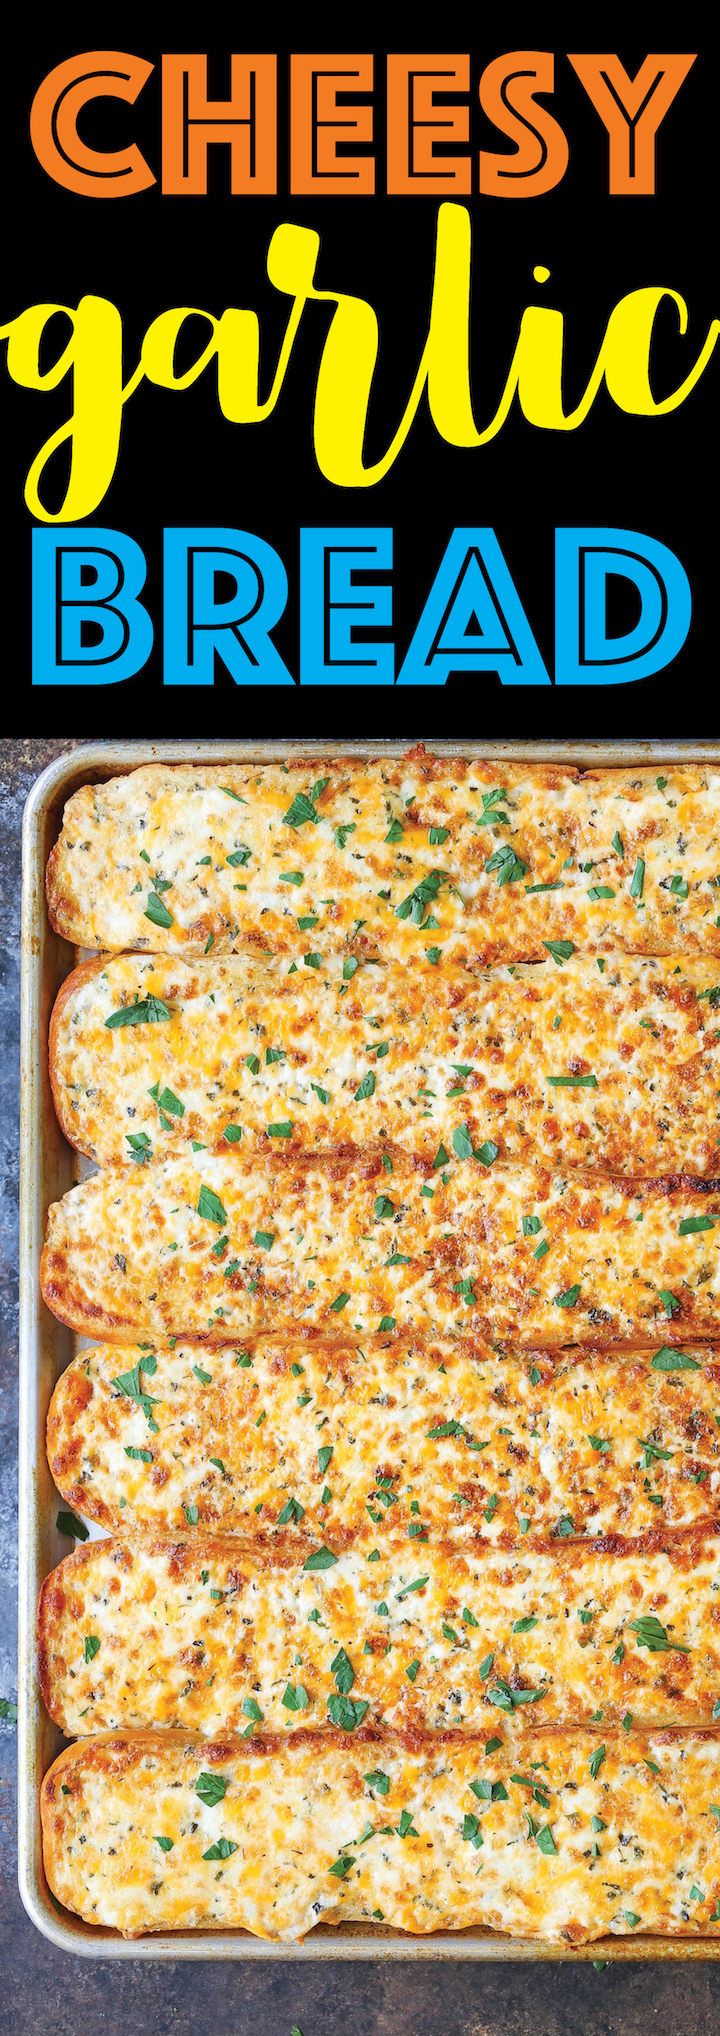 Cheesy Garlic Bread - One bite of this and everyone will beg you to make this again and again! So cheesy, so ooey gooey and so melt-in-your-mouth AH-MAZING!